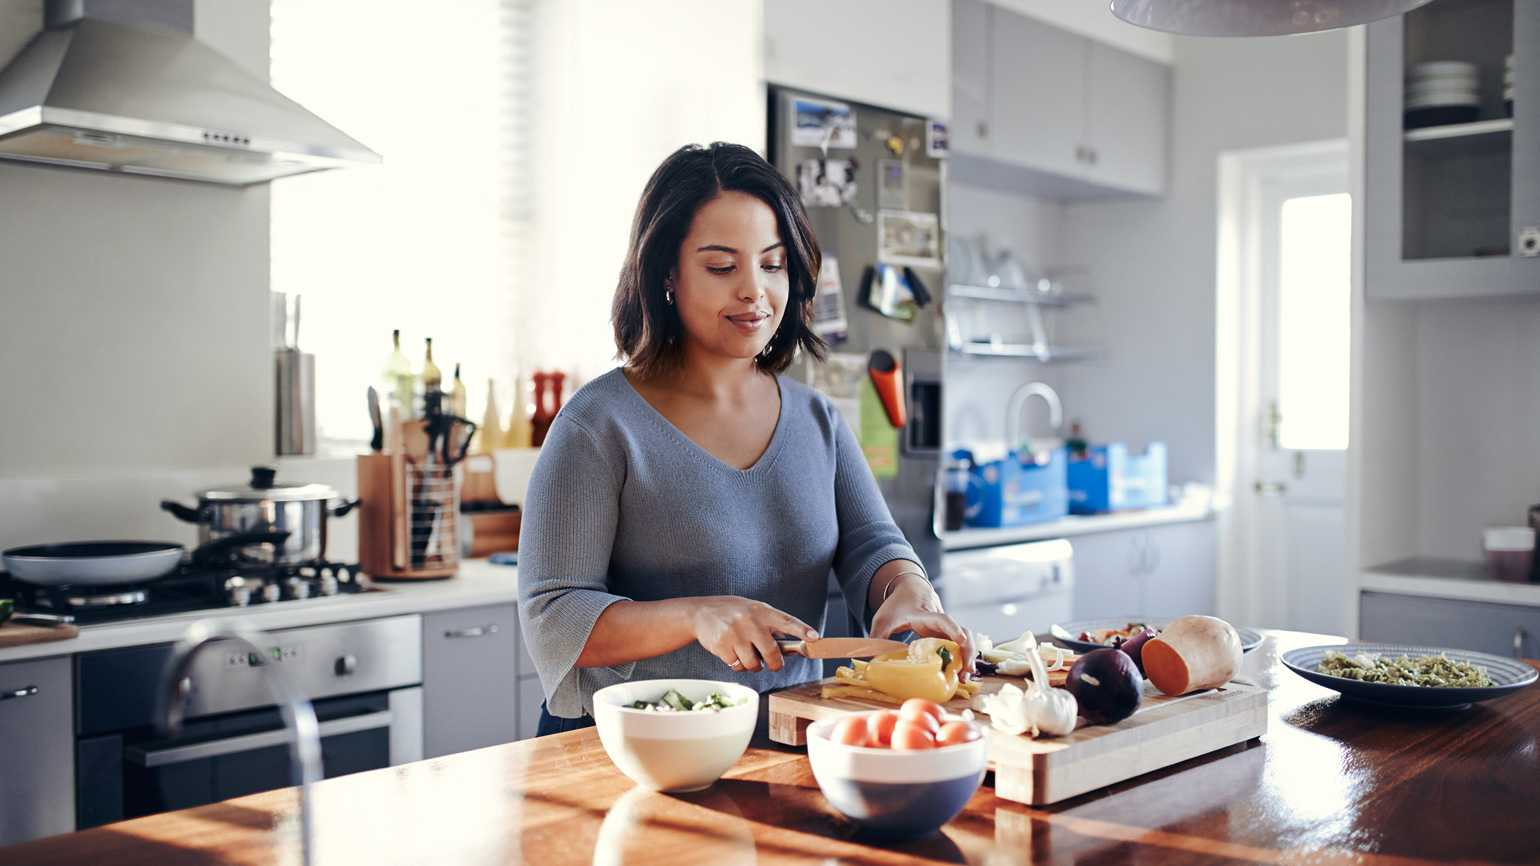 A Caregiver Makes the Healthy Choice to Change Her Diet